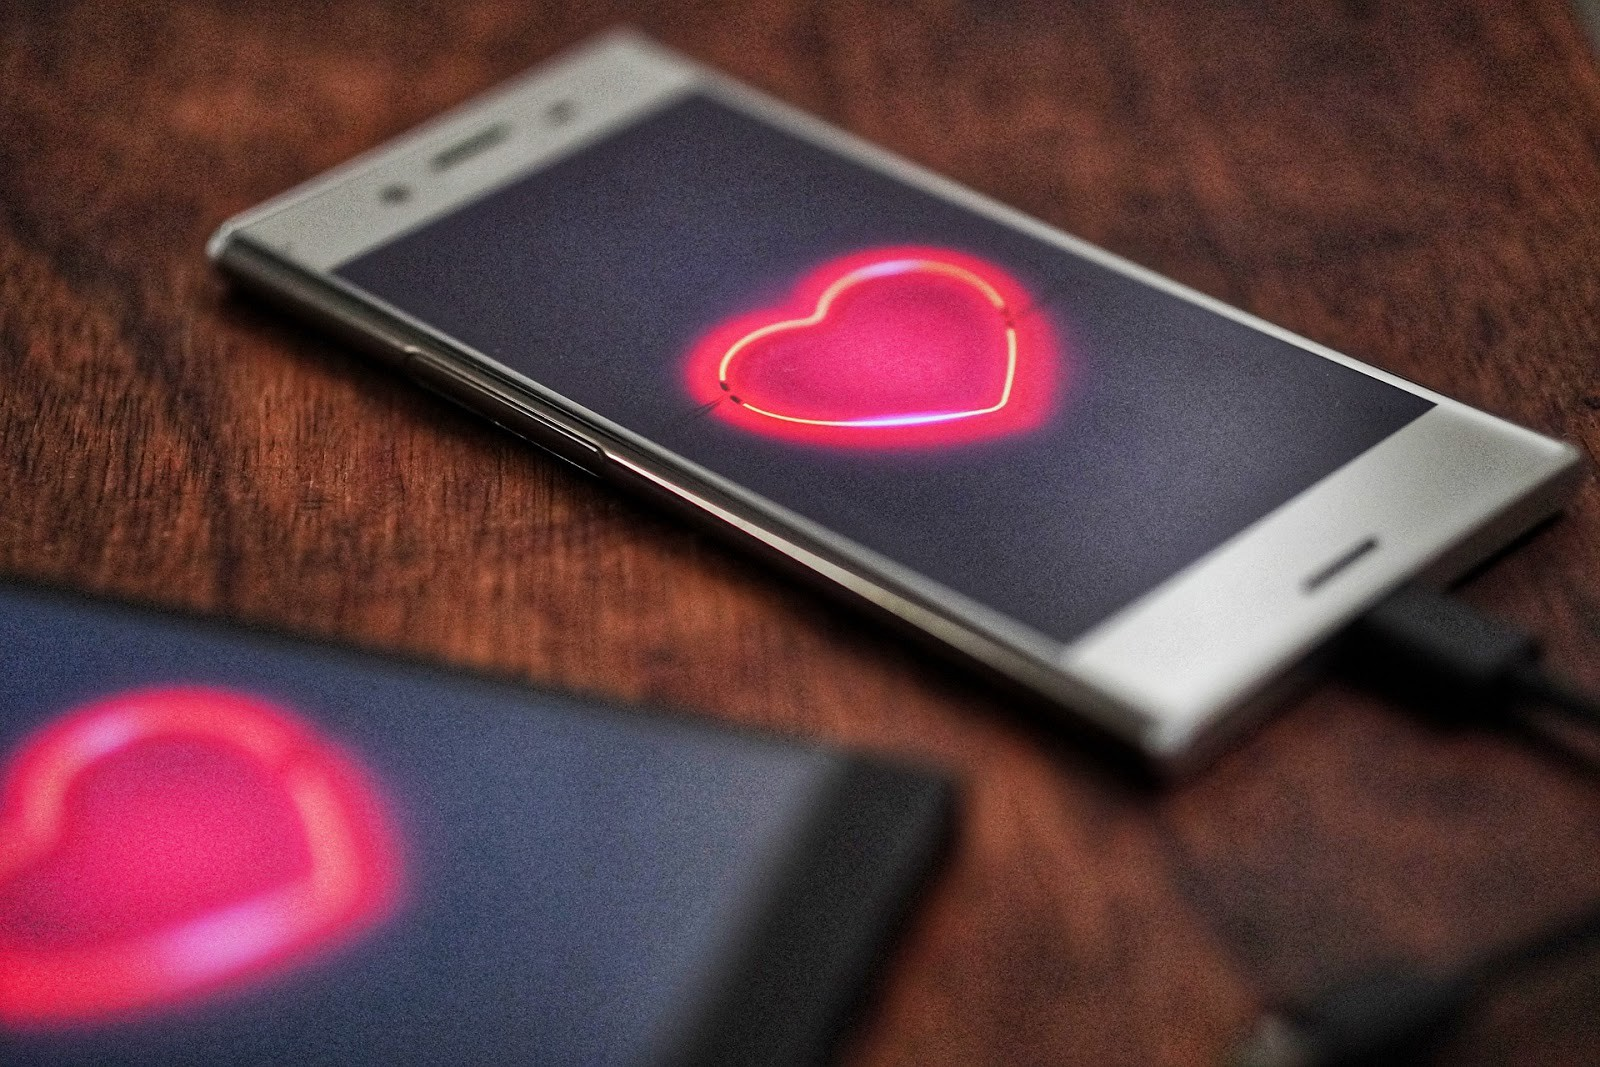 Two smartphones displaying bright red hearts.